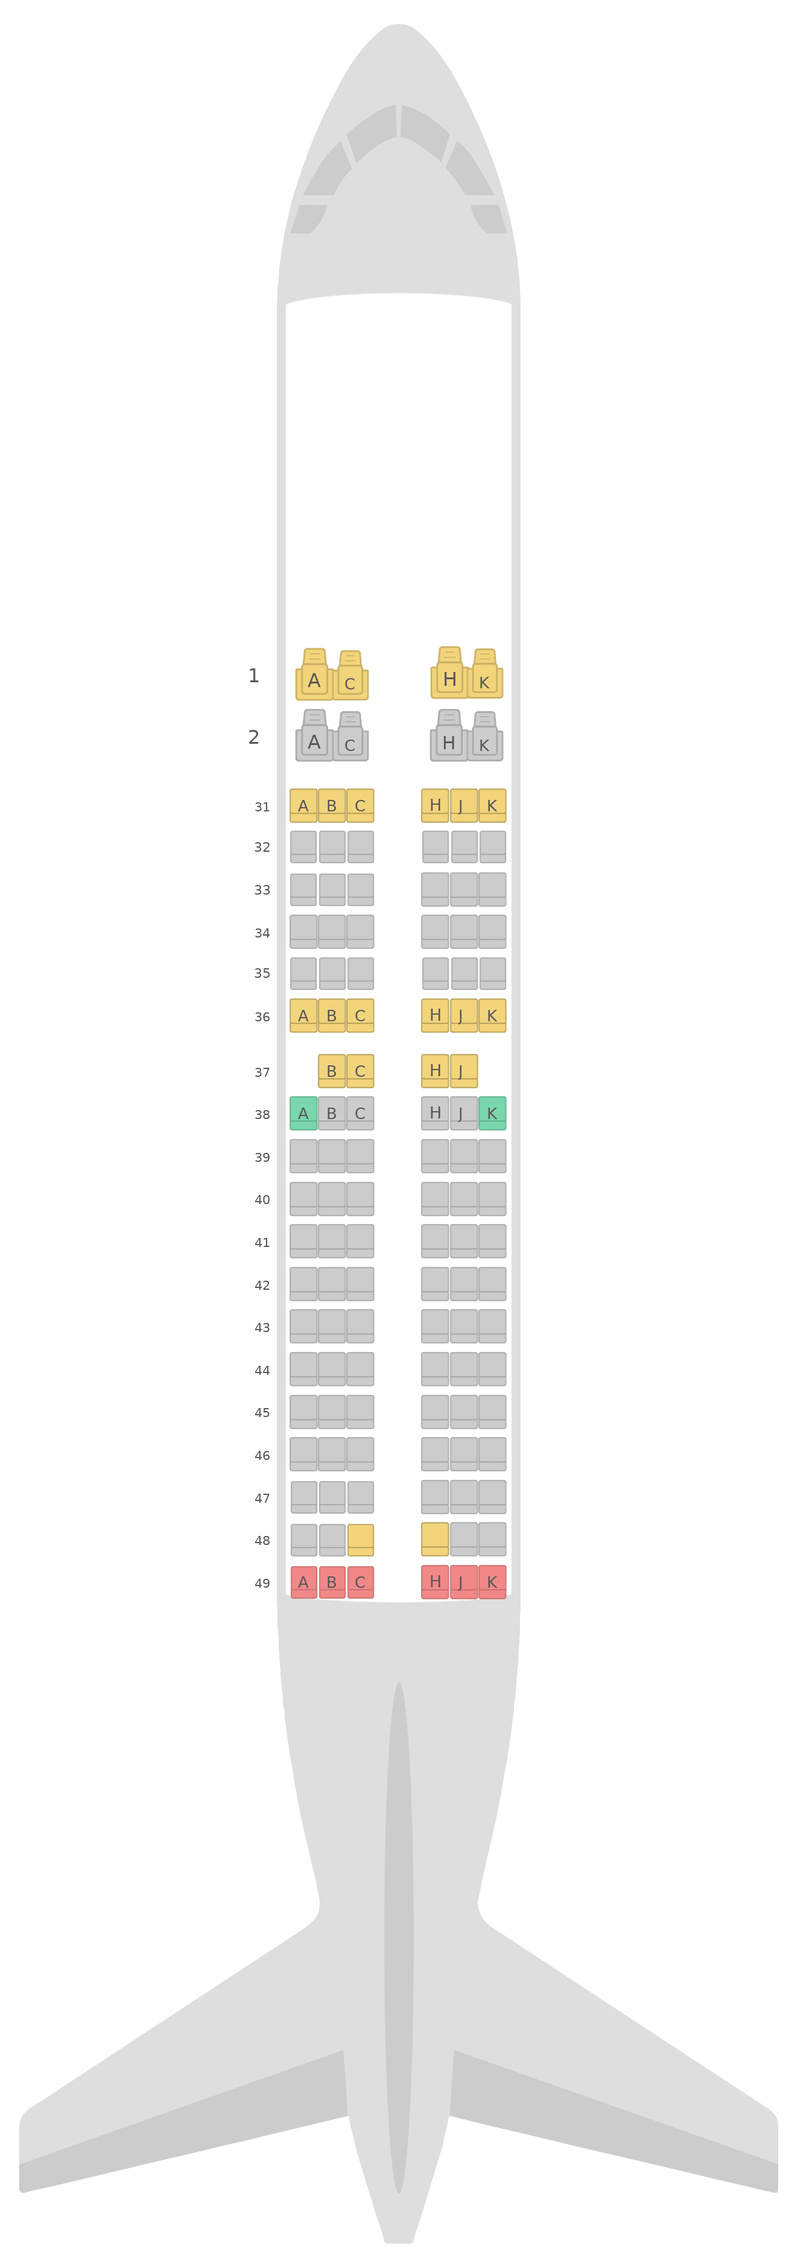 Seat Map China Southern Airlines Boeing 737-700 v1